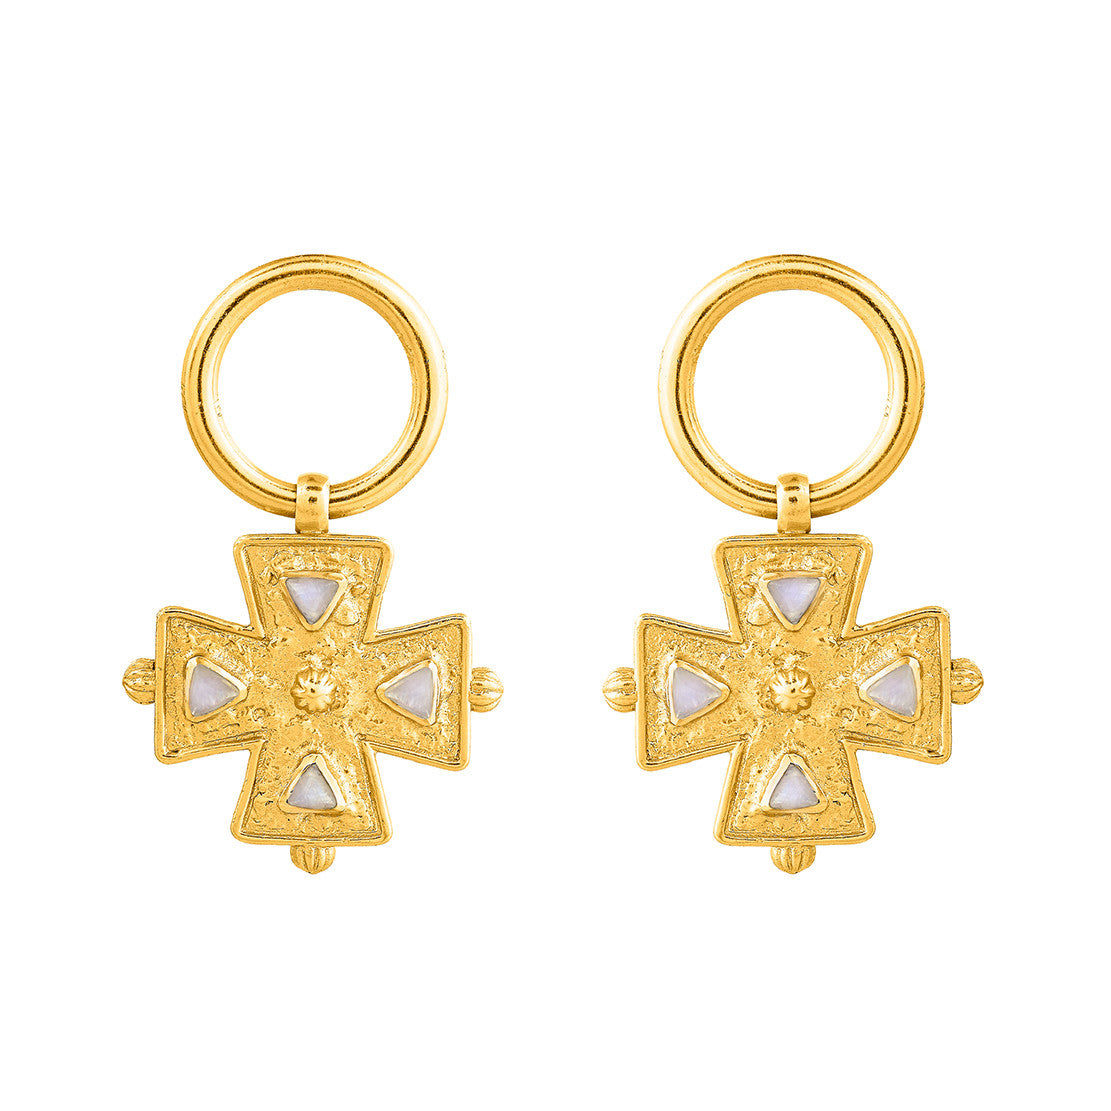 Allegra Earrings